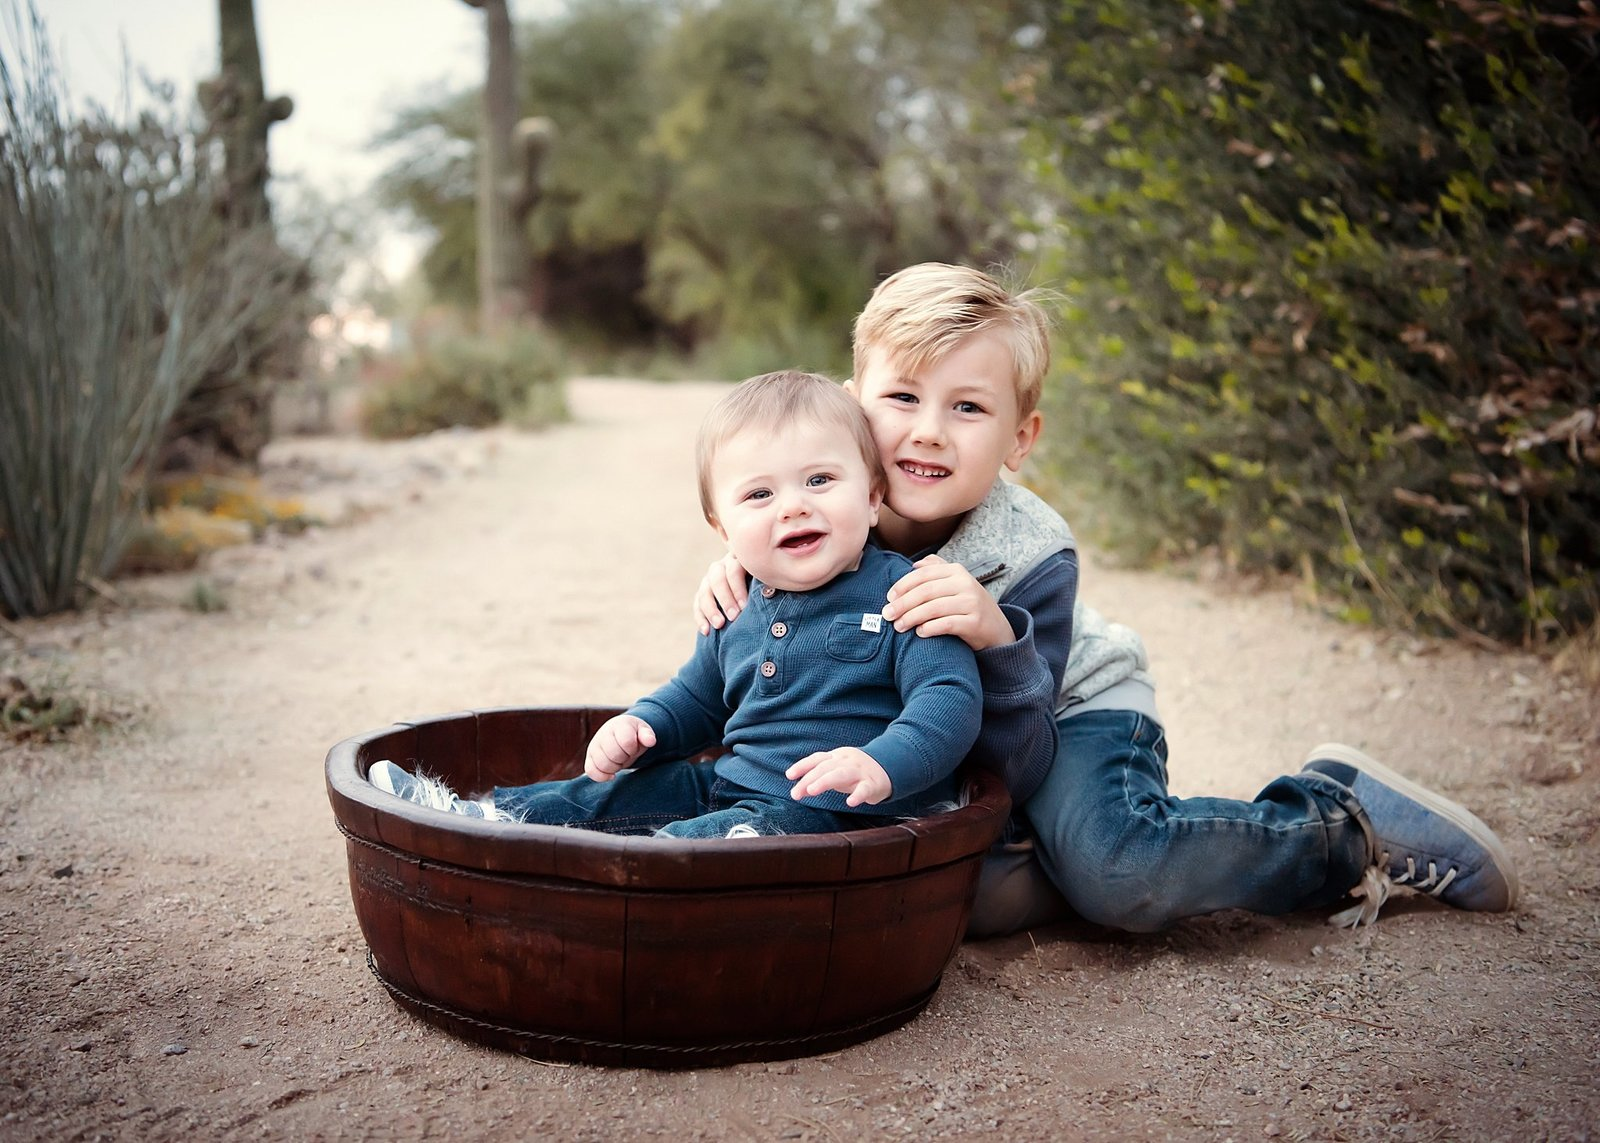 boy is hugging baby brother sitting in a bowl on the ground